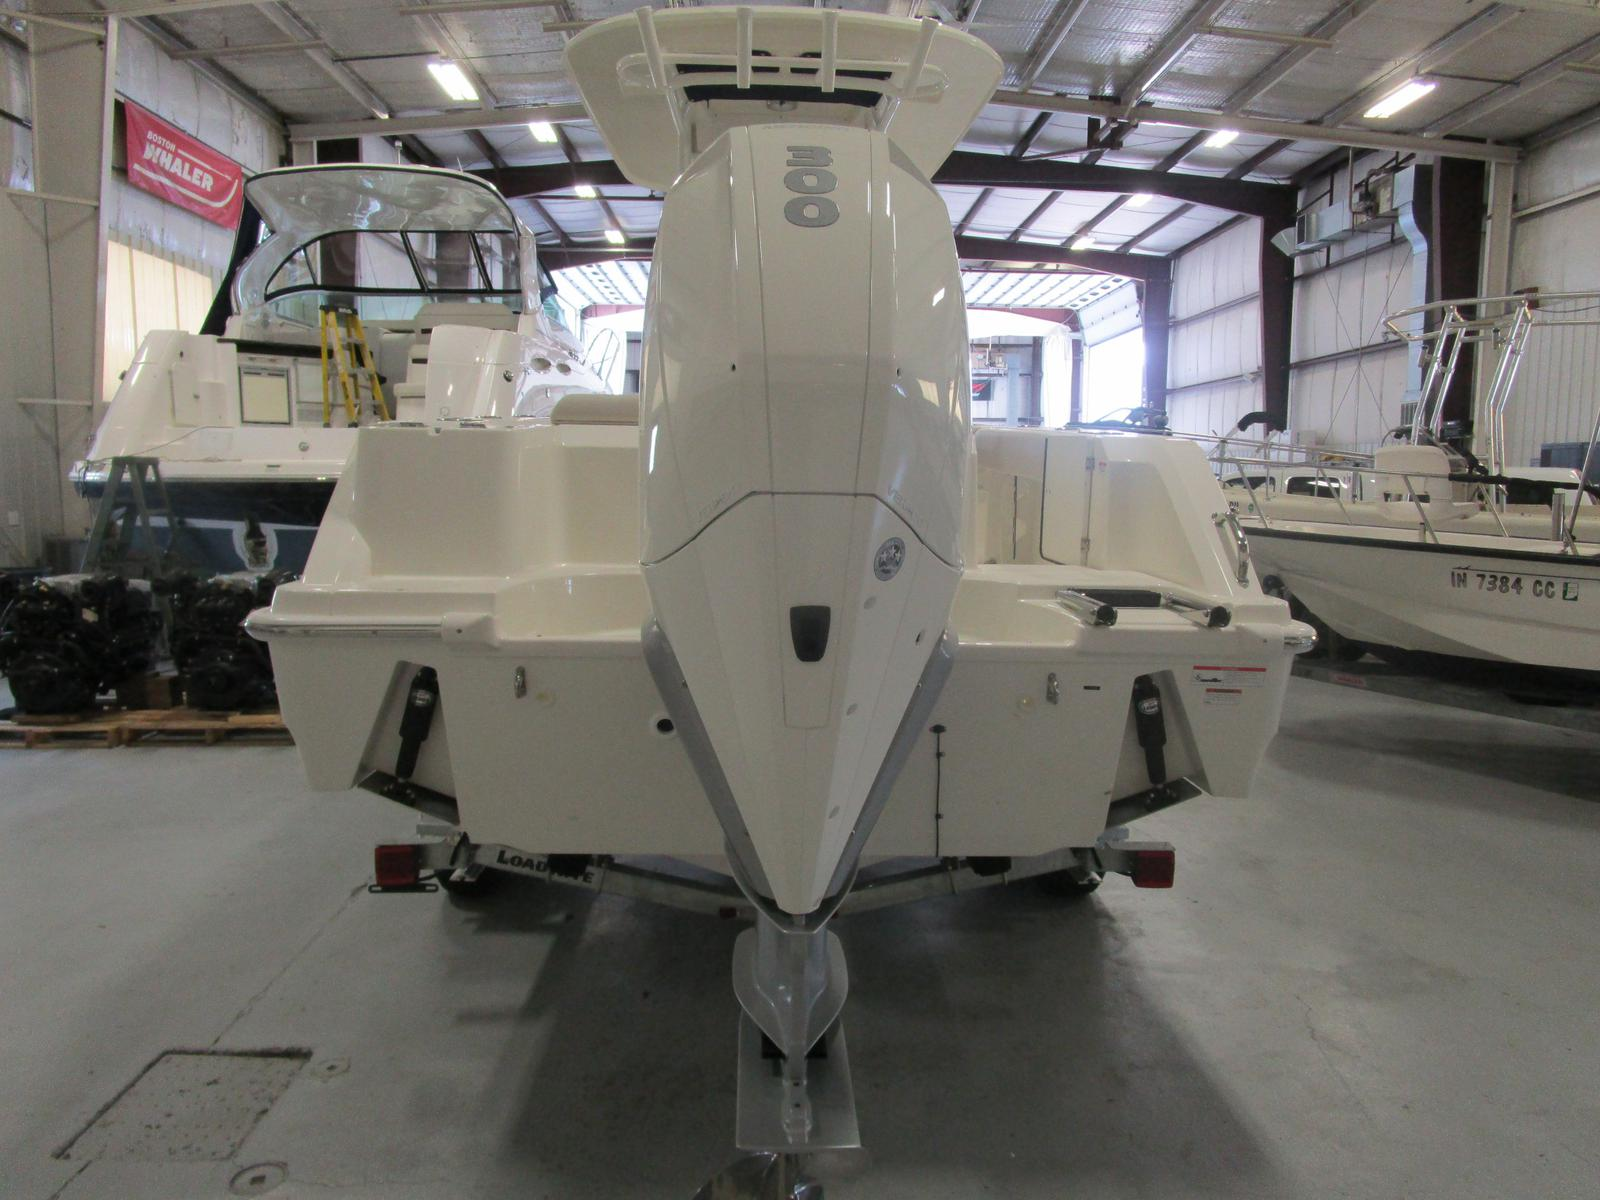 2019 Boston Whaler boat for sale, model of the boat is 230 Outrage & Image # 3 of 10